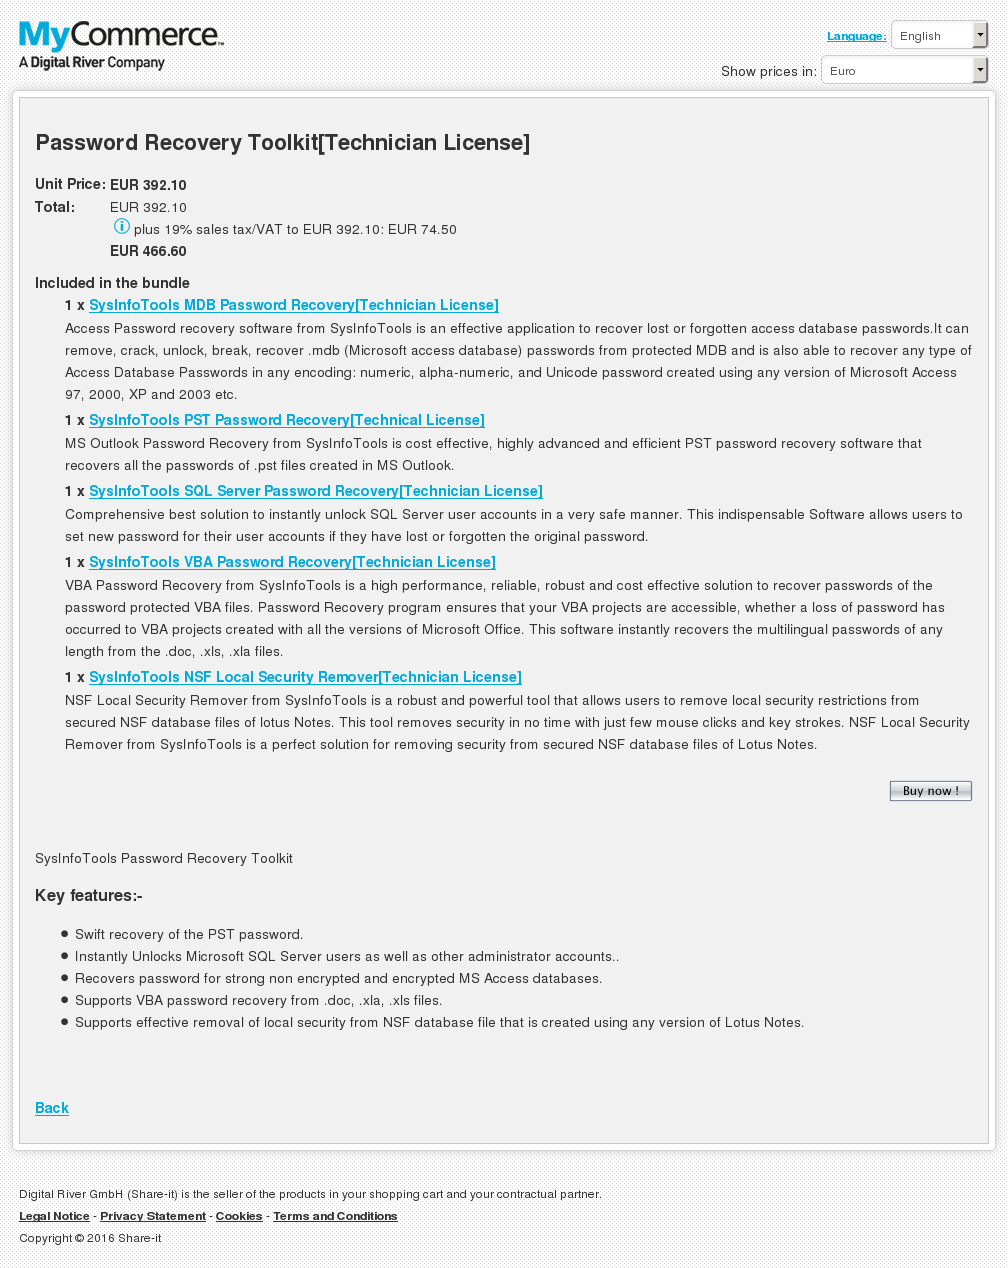 Password Recovery Toolkit Technician License Free